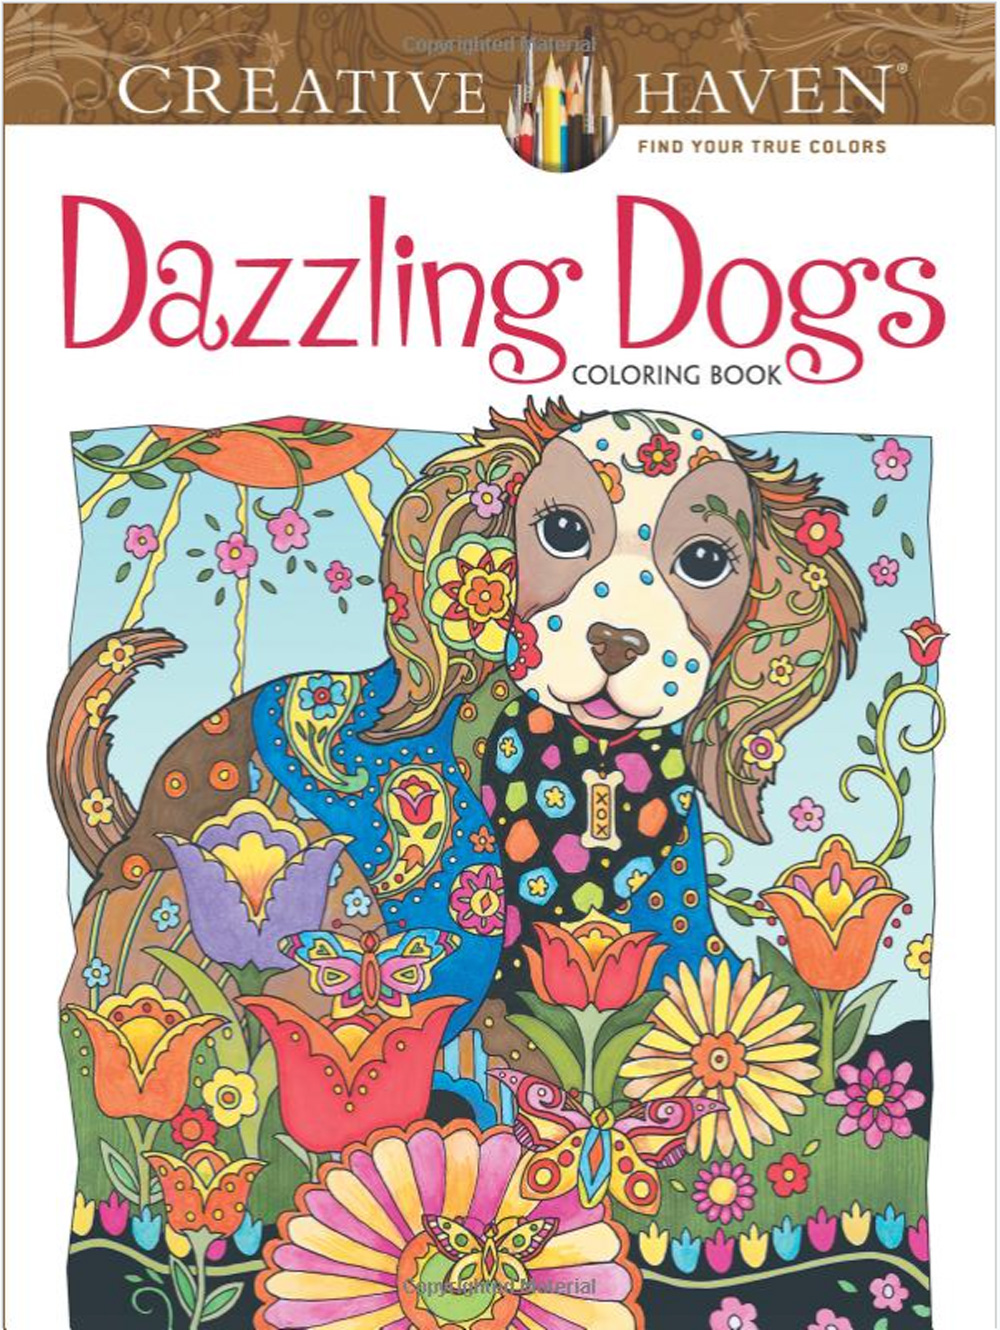 Creative Haven Coloring Book Dazzling Dogs